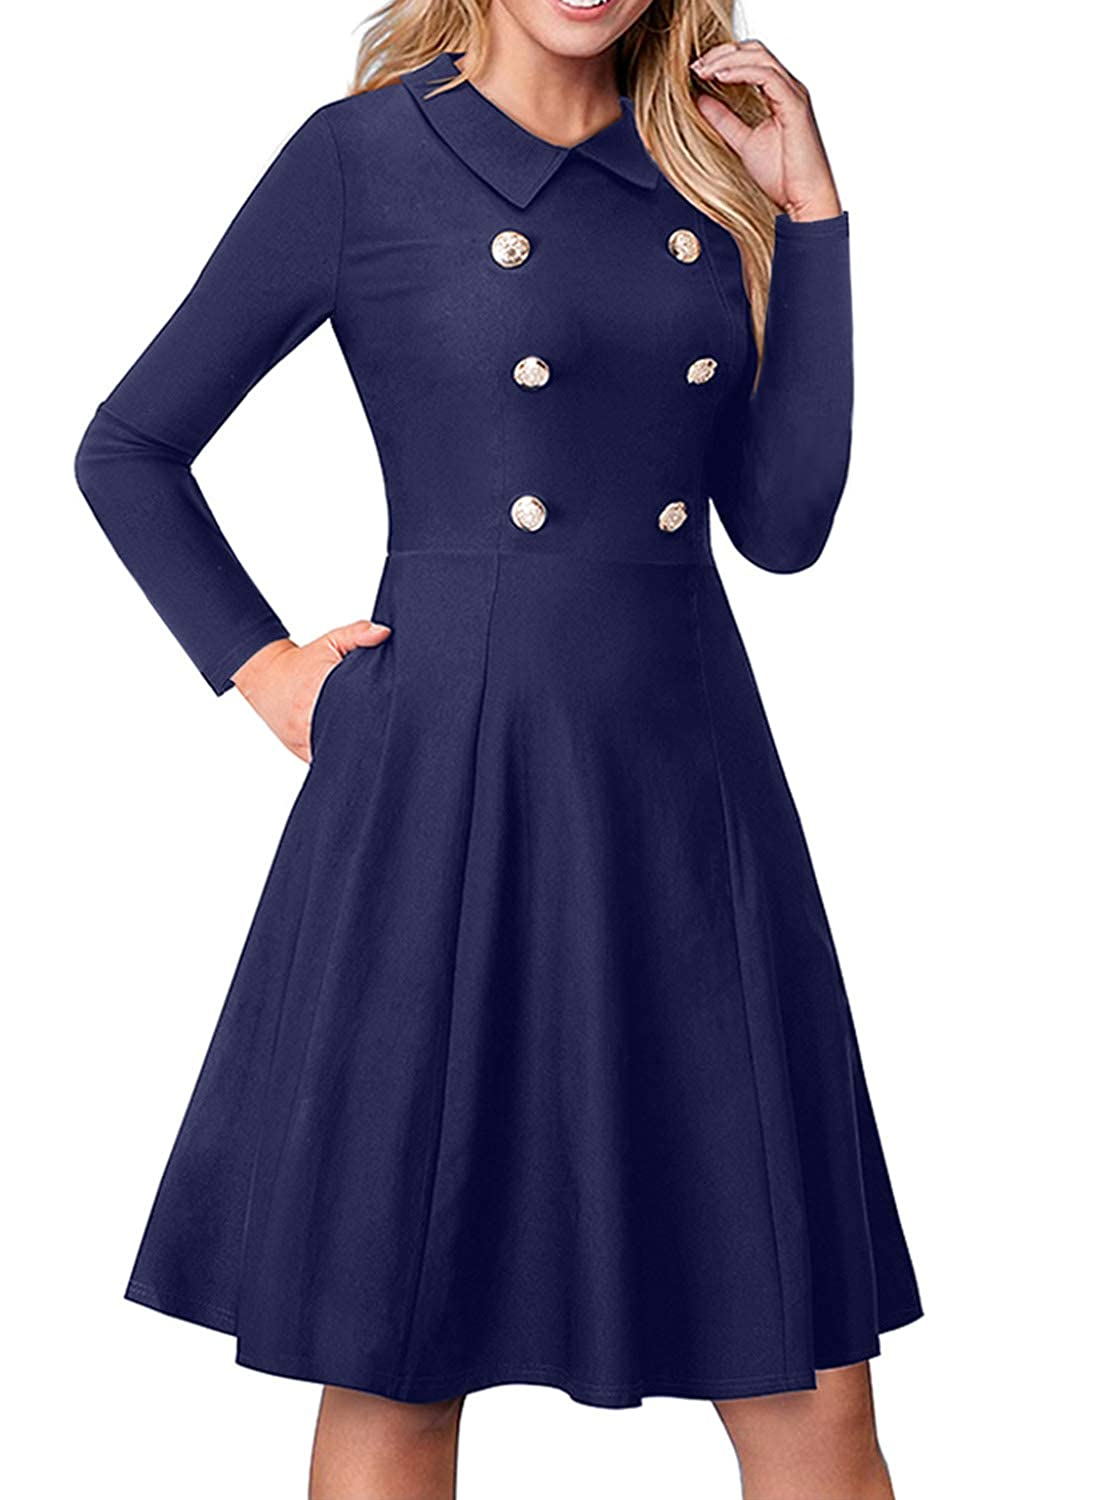 bluee Foryingni Women's Long Sleeve Turn Down Collar Double Breasted Midi Business Swing Dress with Pockets